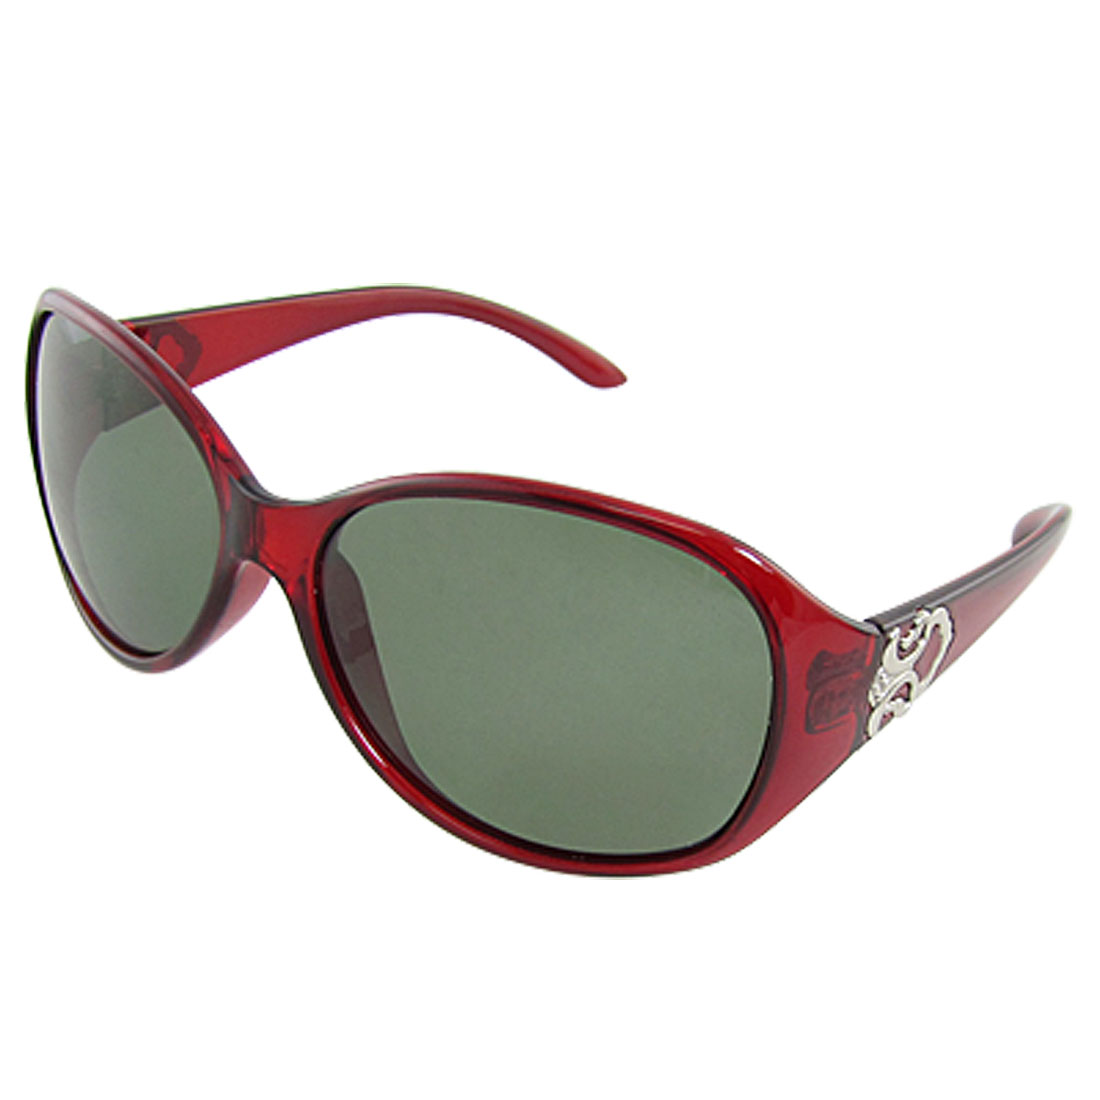 Full Rim Plastic Burgundy Polarized Sunglasses for Lady